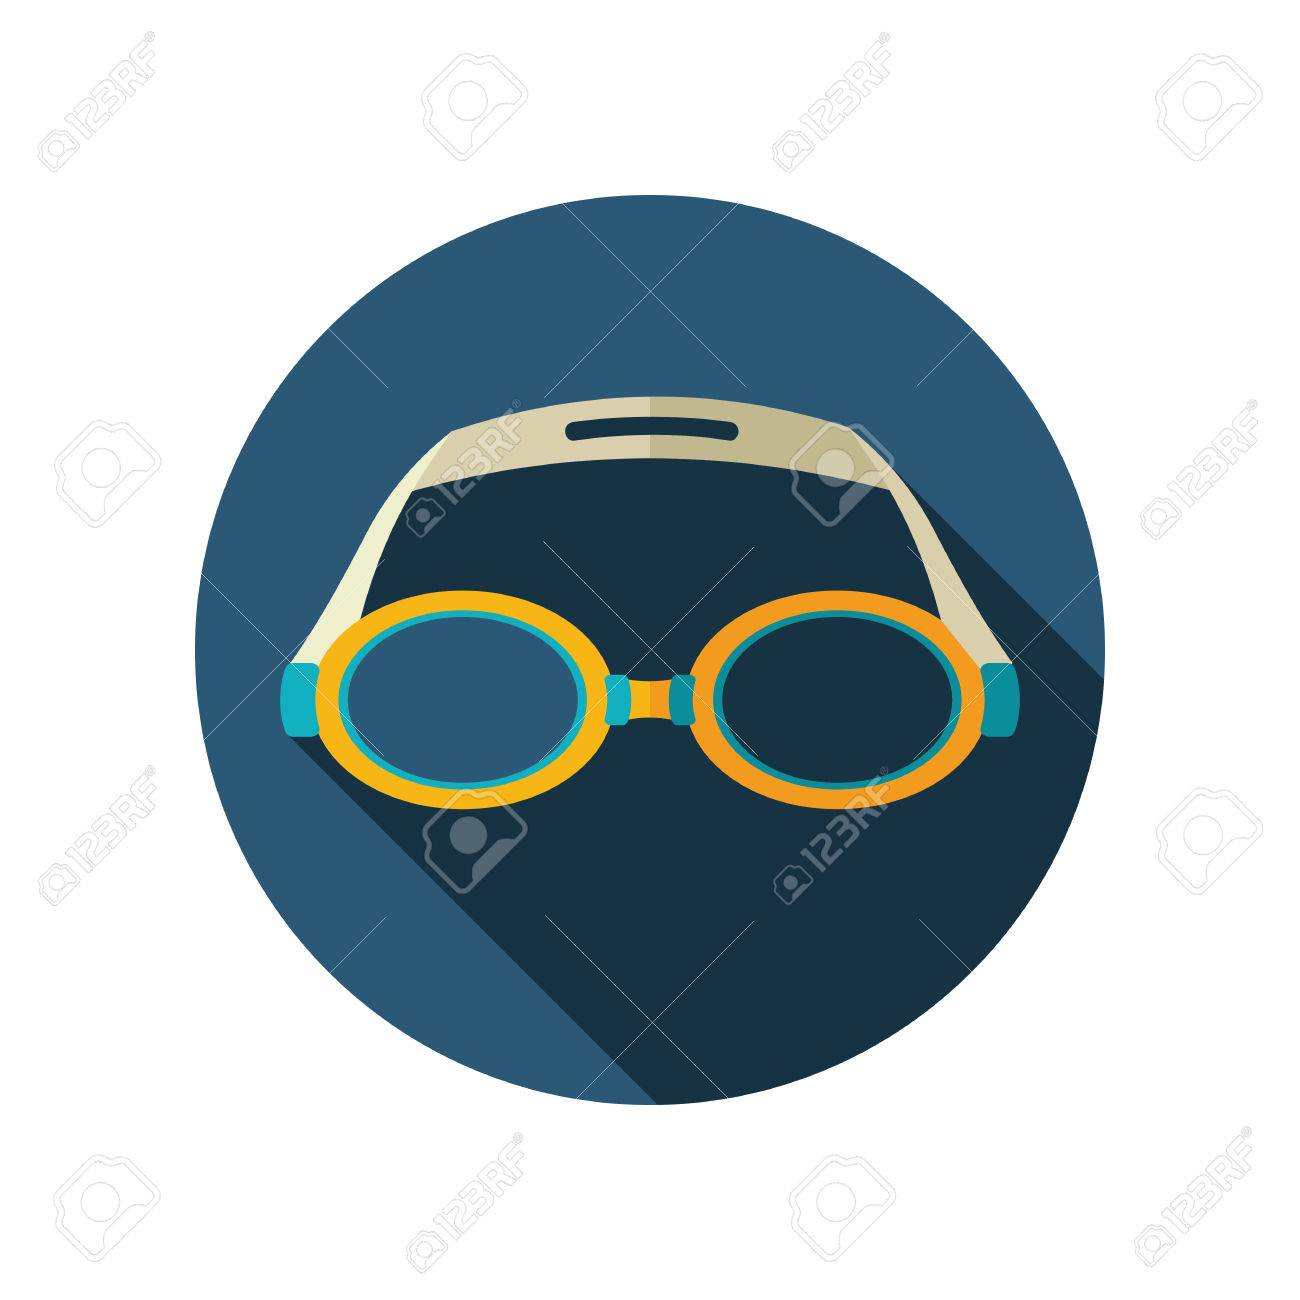 7b21d729d0e0 Swimming Goggles vector flat icon. Beach. Summer. Summertime. Vacation  Stock Vector -